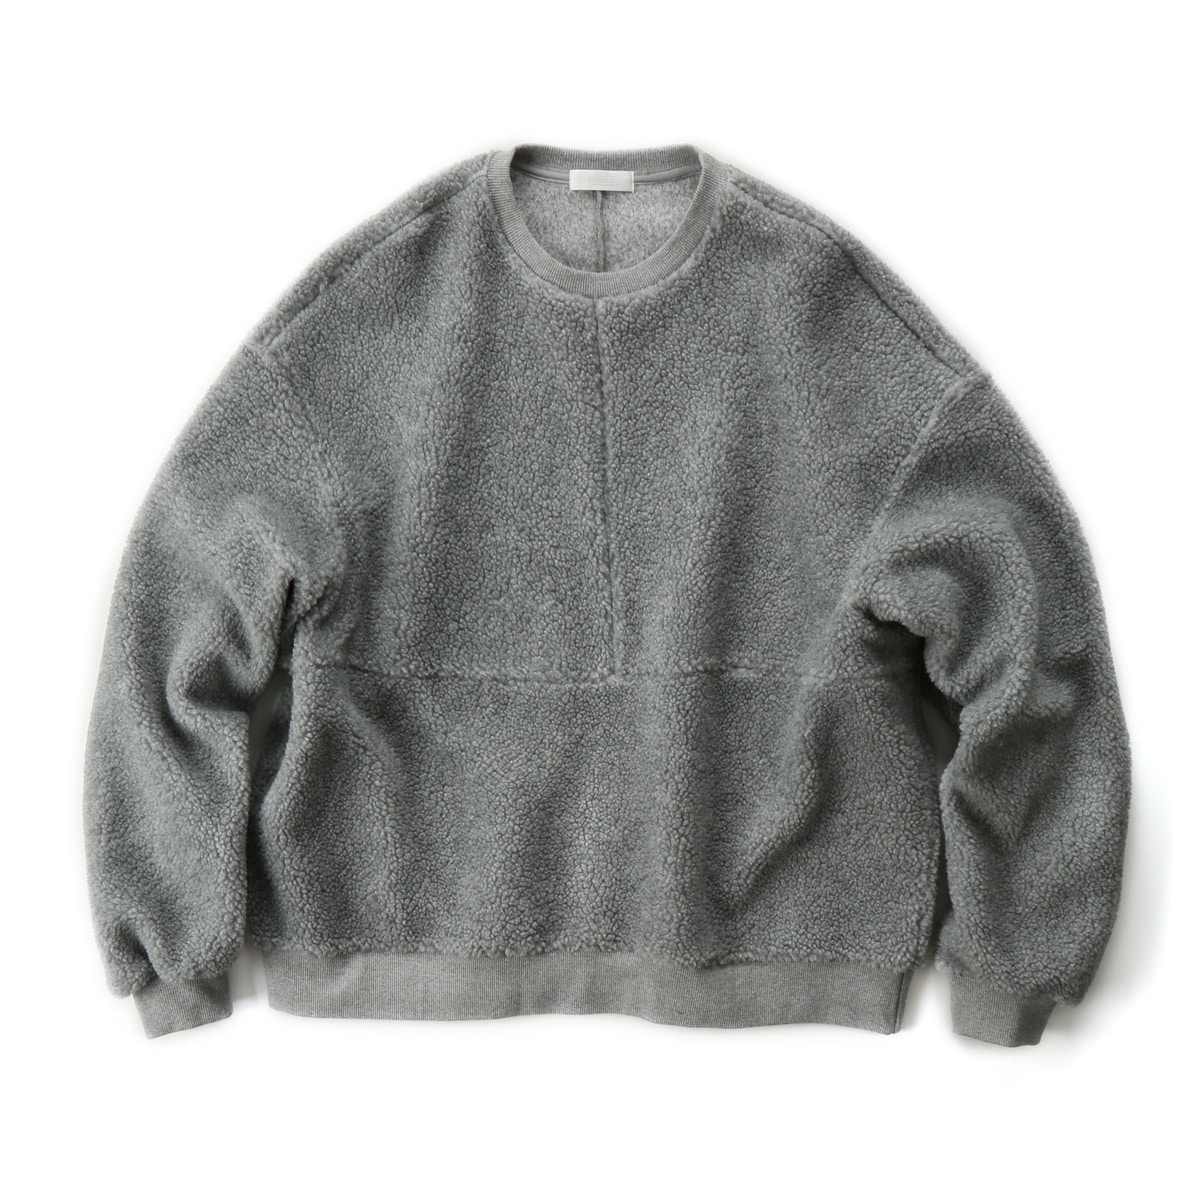 [MUSED] NATAL VEGAN FUR SWEATSHIRT 'GRAY'